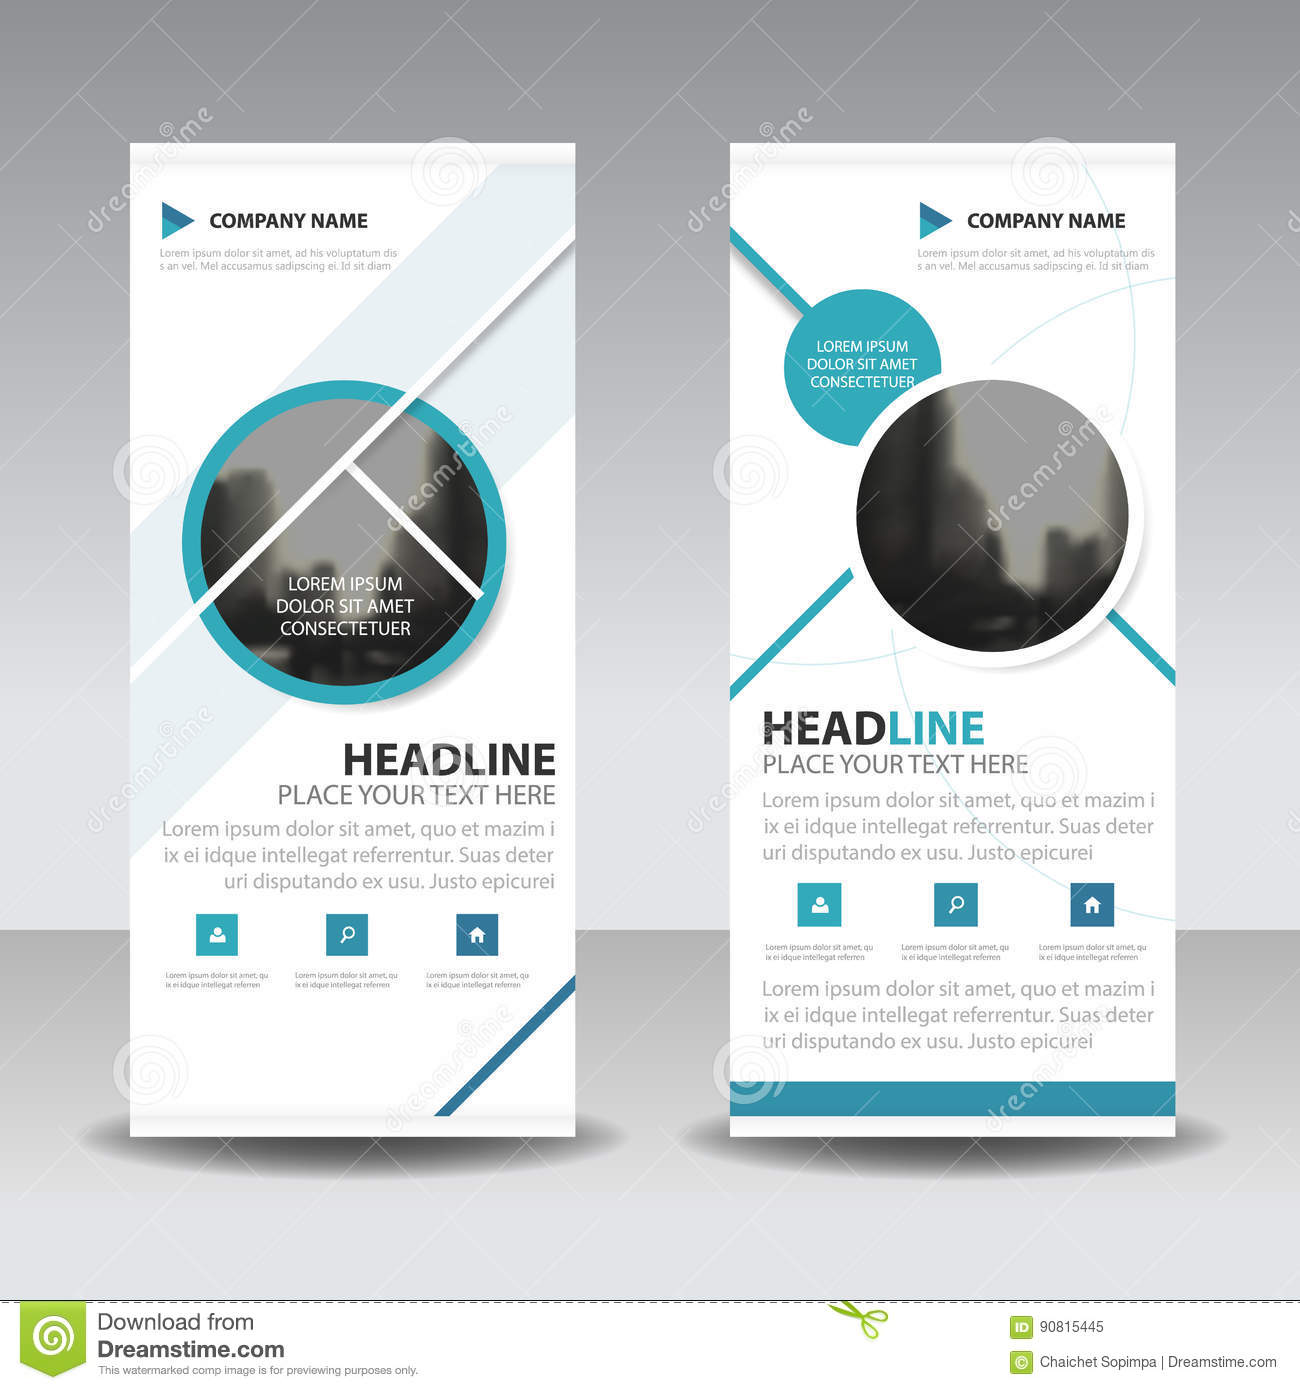 Blue circle roll up business brochure flyer banner design , cover presentation abstract geometric background, modern publication